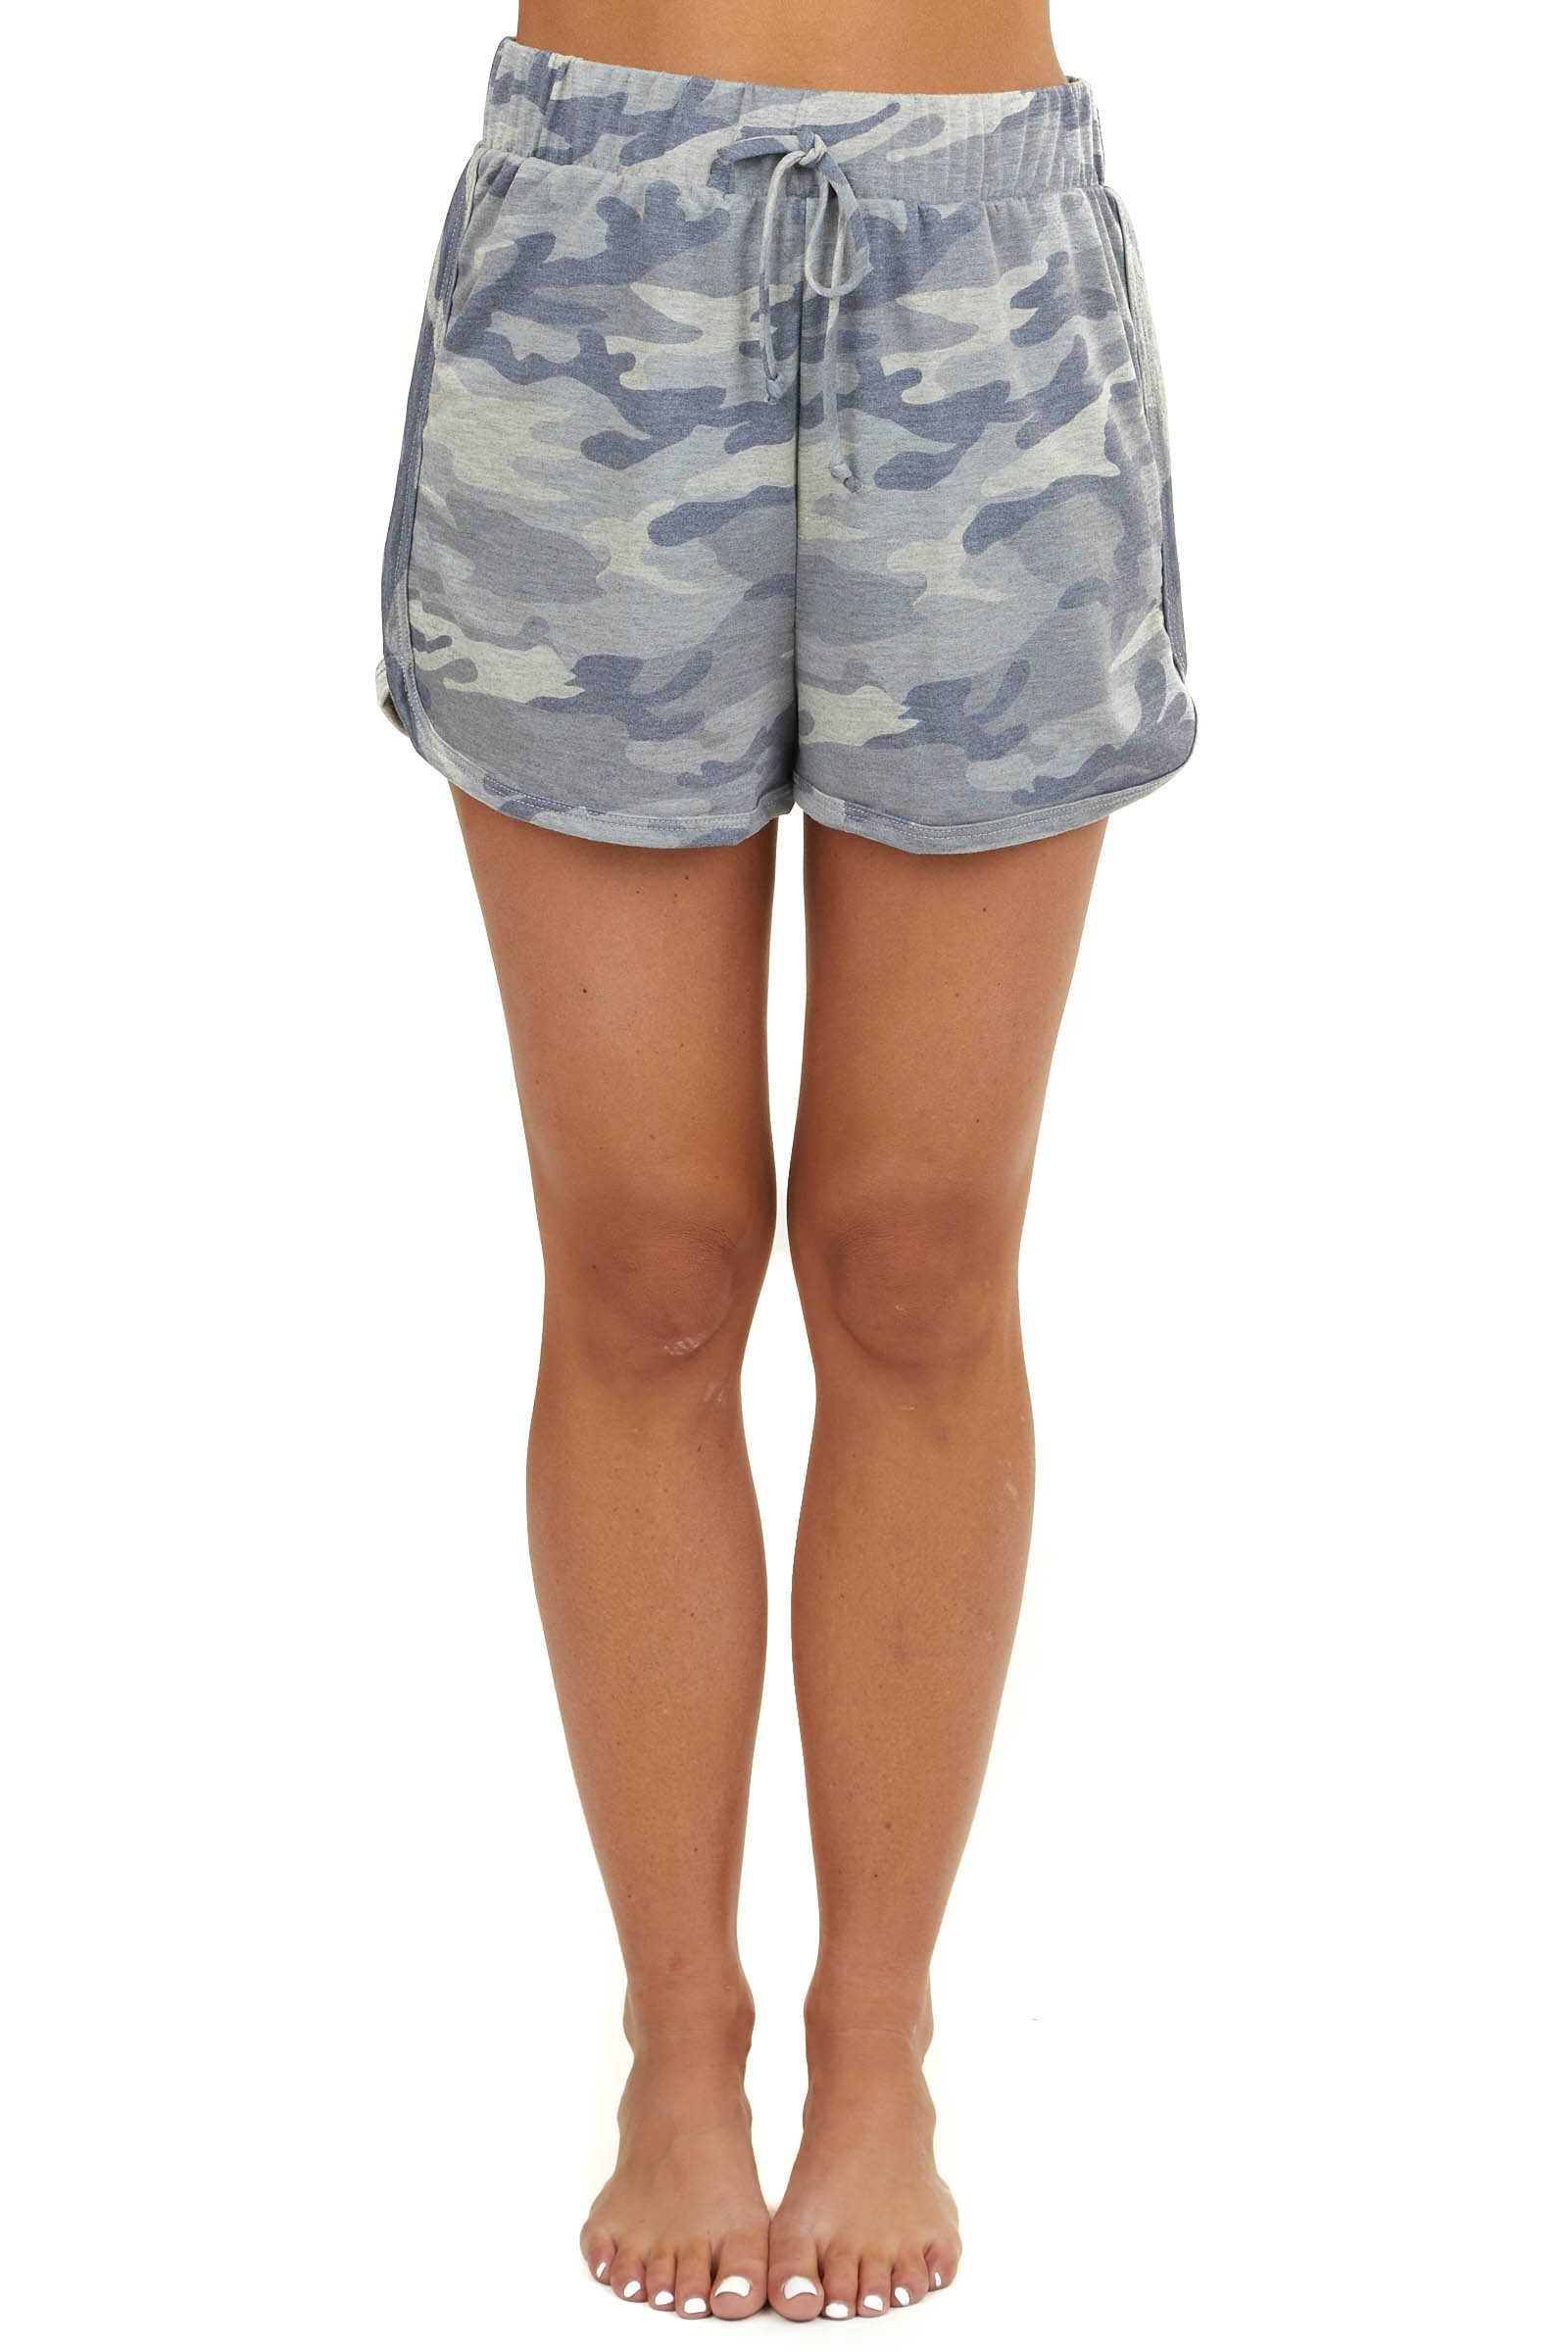 Grey Camo Loungewear Drawstring Shorts with Pockets